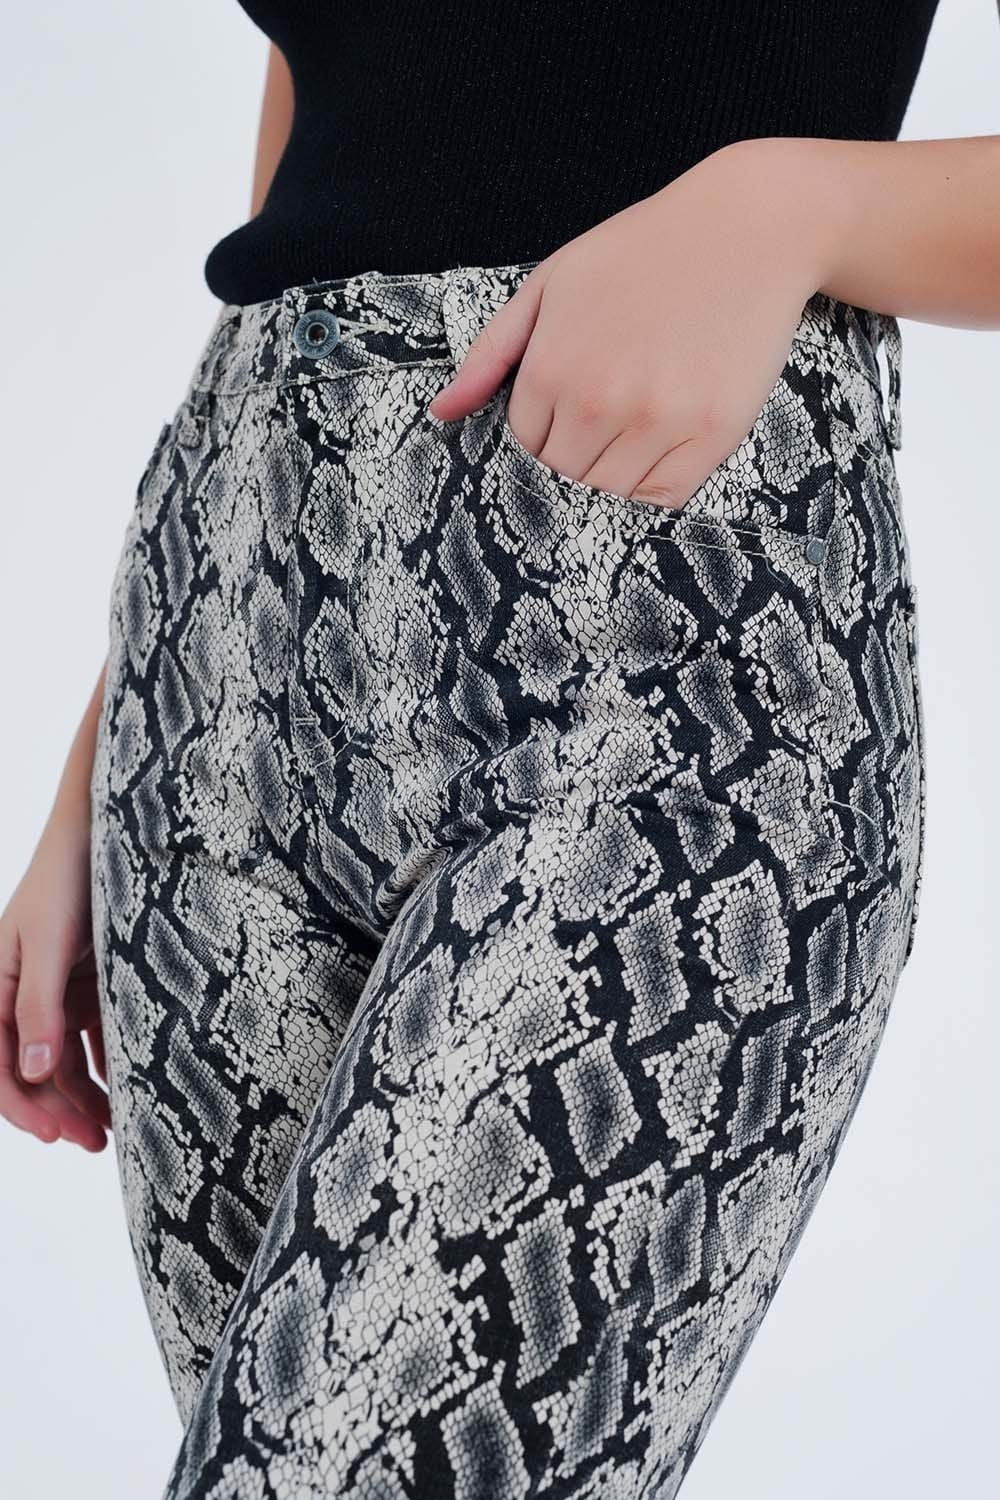 Black pants with snake print - Himelhoch's